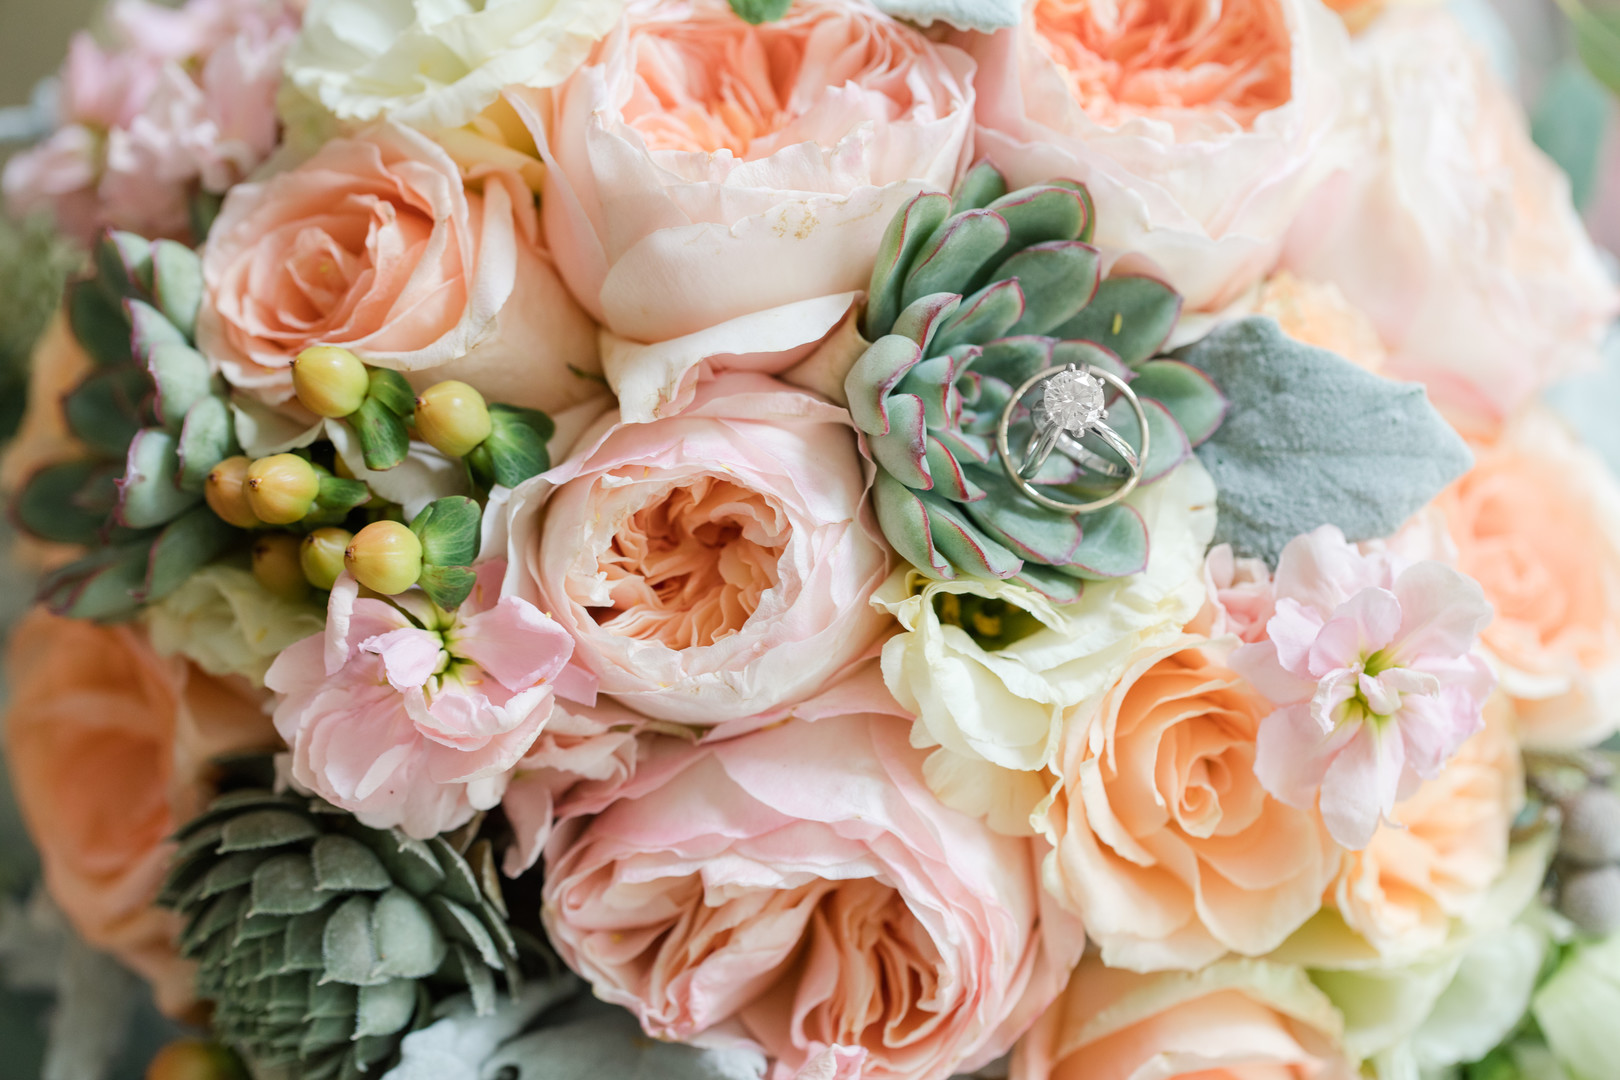 Planning Your Wedding Budget: Flowers